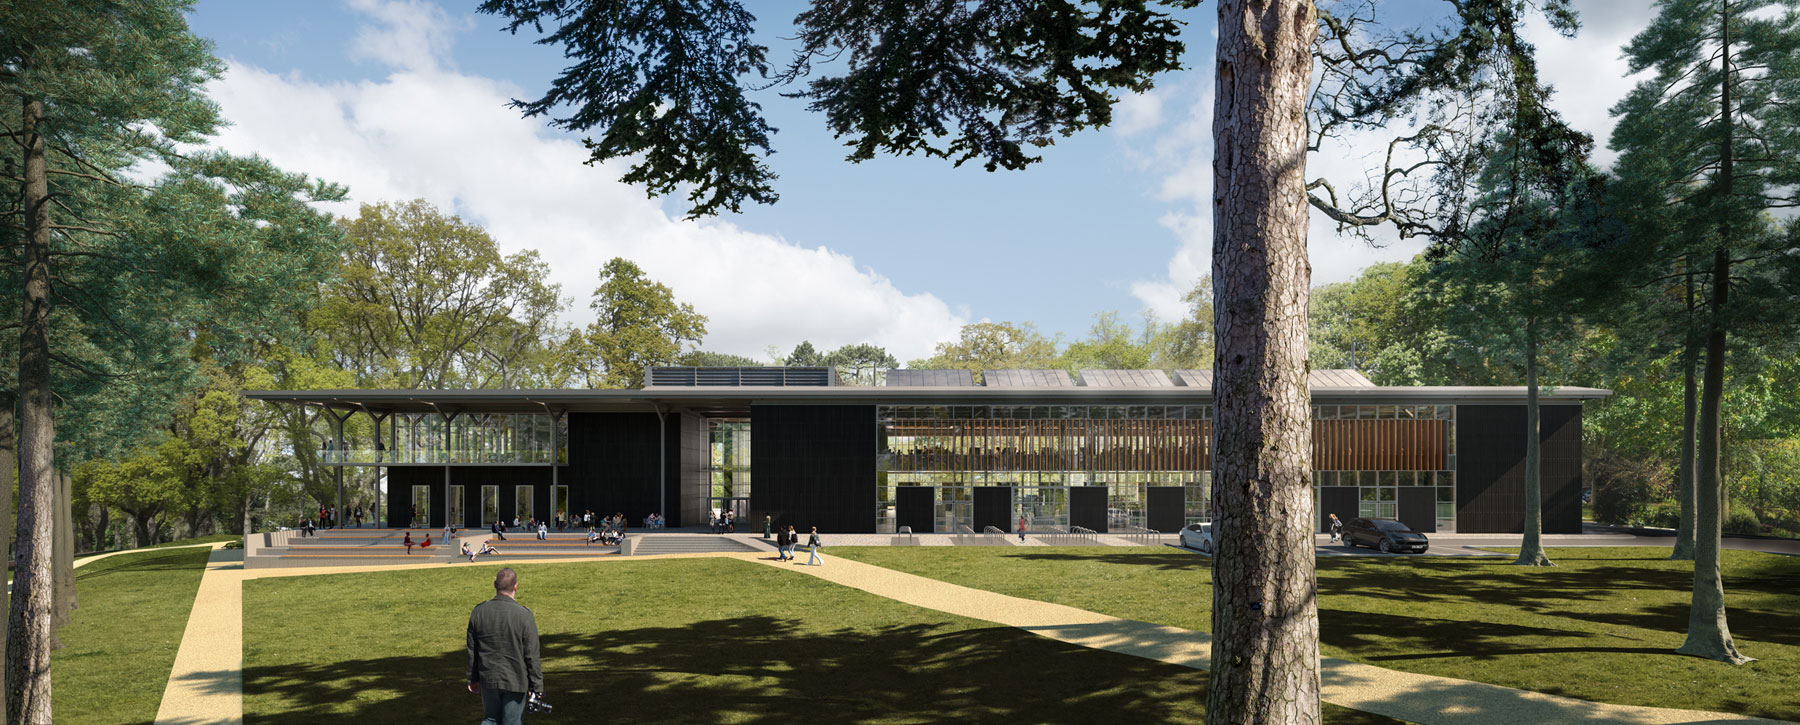 Resonant Architecture / BGS Architects Oxford Brookes faculty building